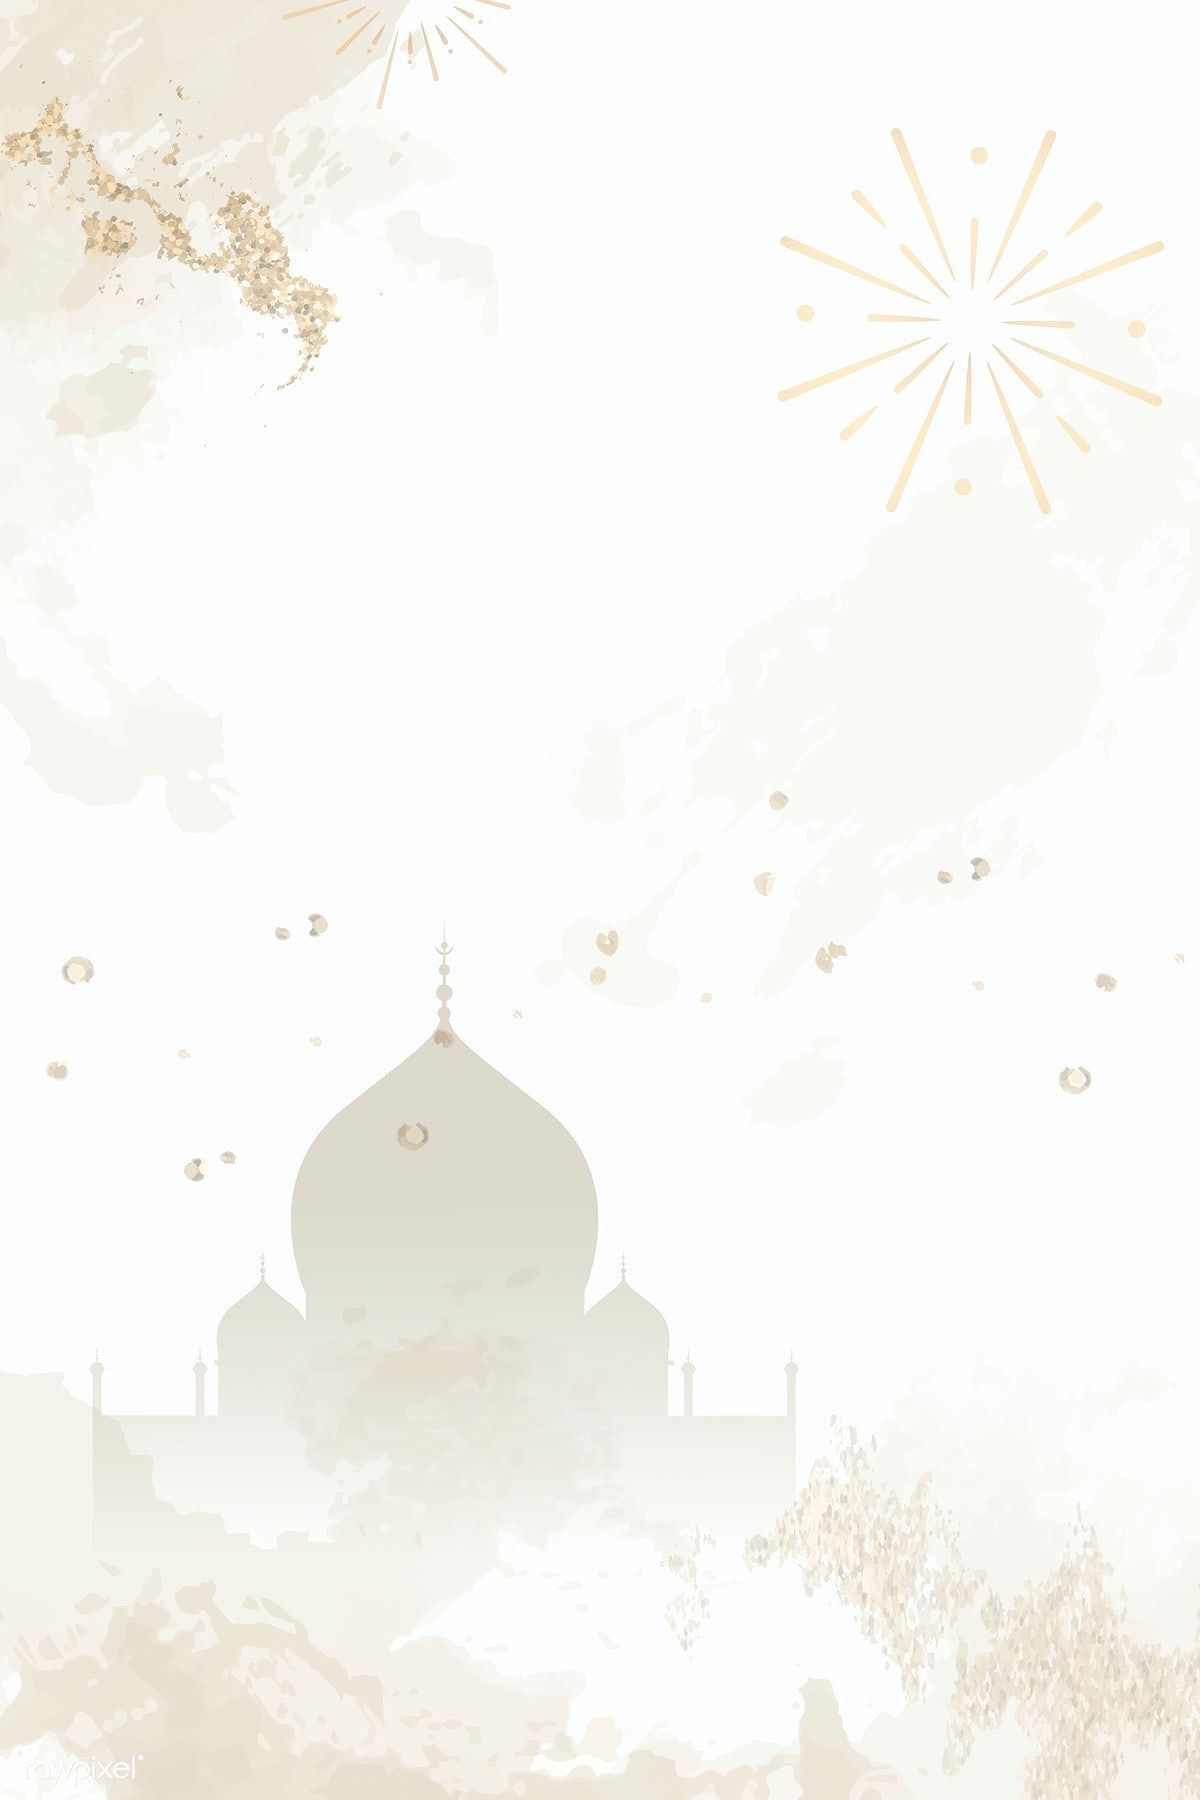 Background Idul Fitri Vector : background, fitri, vector, Download, Premium, Vector, Diwali, Festival, Patterned, Background, Poster, Design,, Pattern,, Wallpaper, Ramadhan